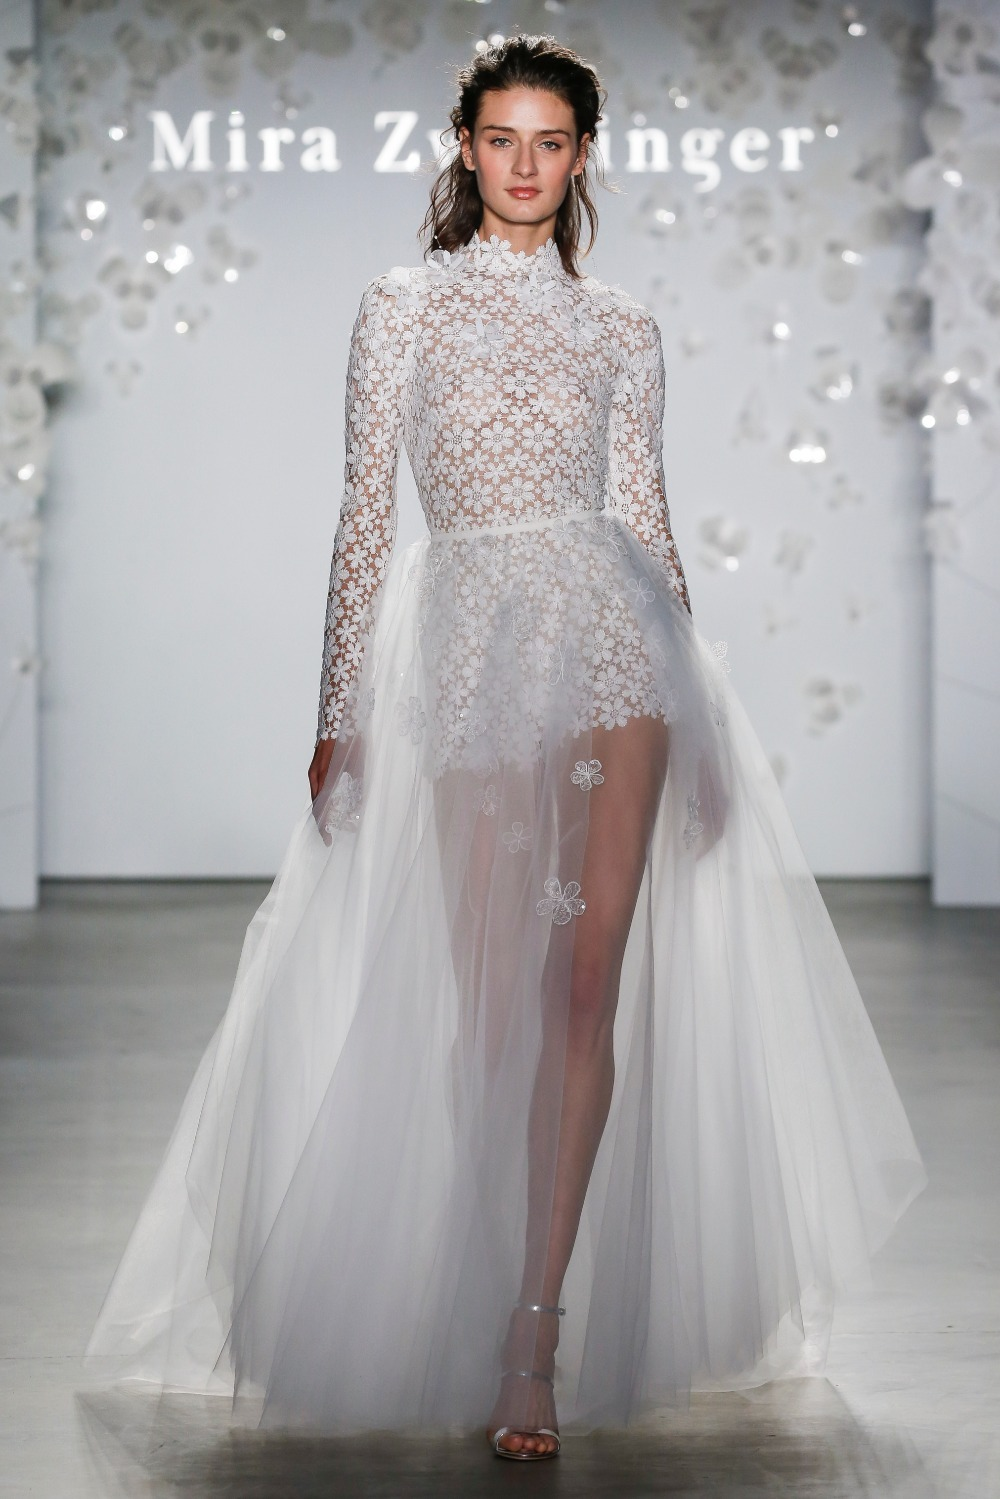 Wedding Dress Trends We Love For 2020 Brides In 2020 Wedding Dress Trends Bridal Wedding Dresses Bridal Dresses